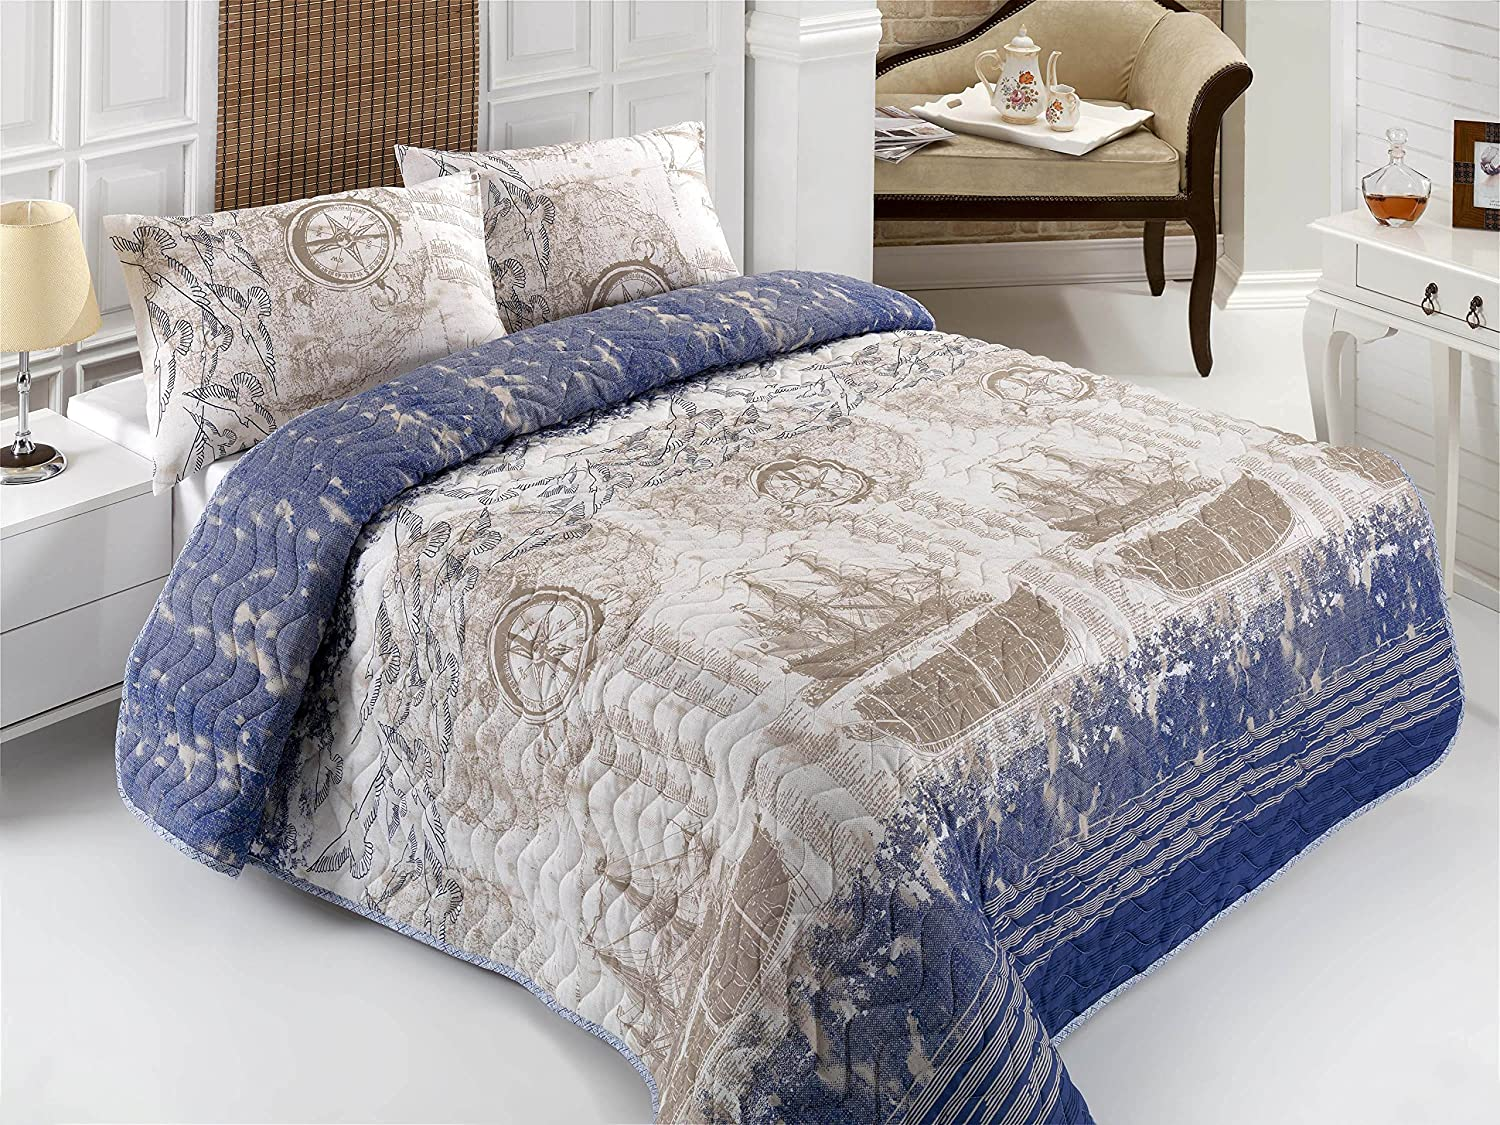 DecoMood Nautical Bedding, Full/Queen Size Bedspread/Coverlet Set, Ship, Compass, and Birds Themed Girls Boys Bedding, 3 PCS,